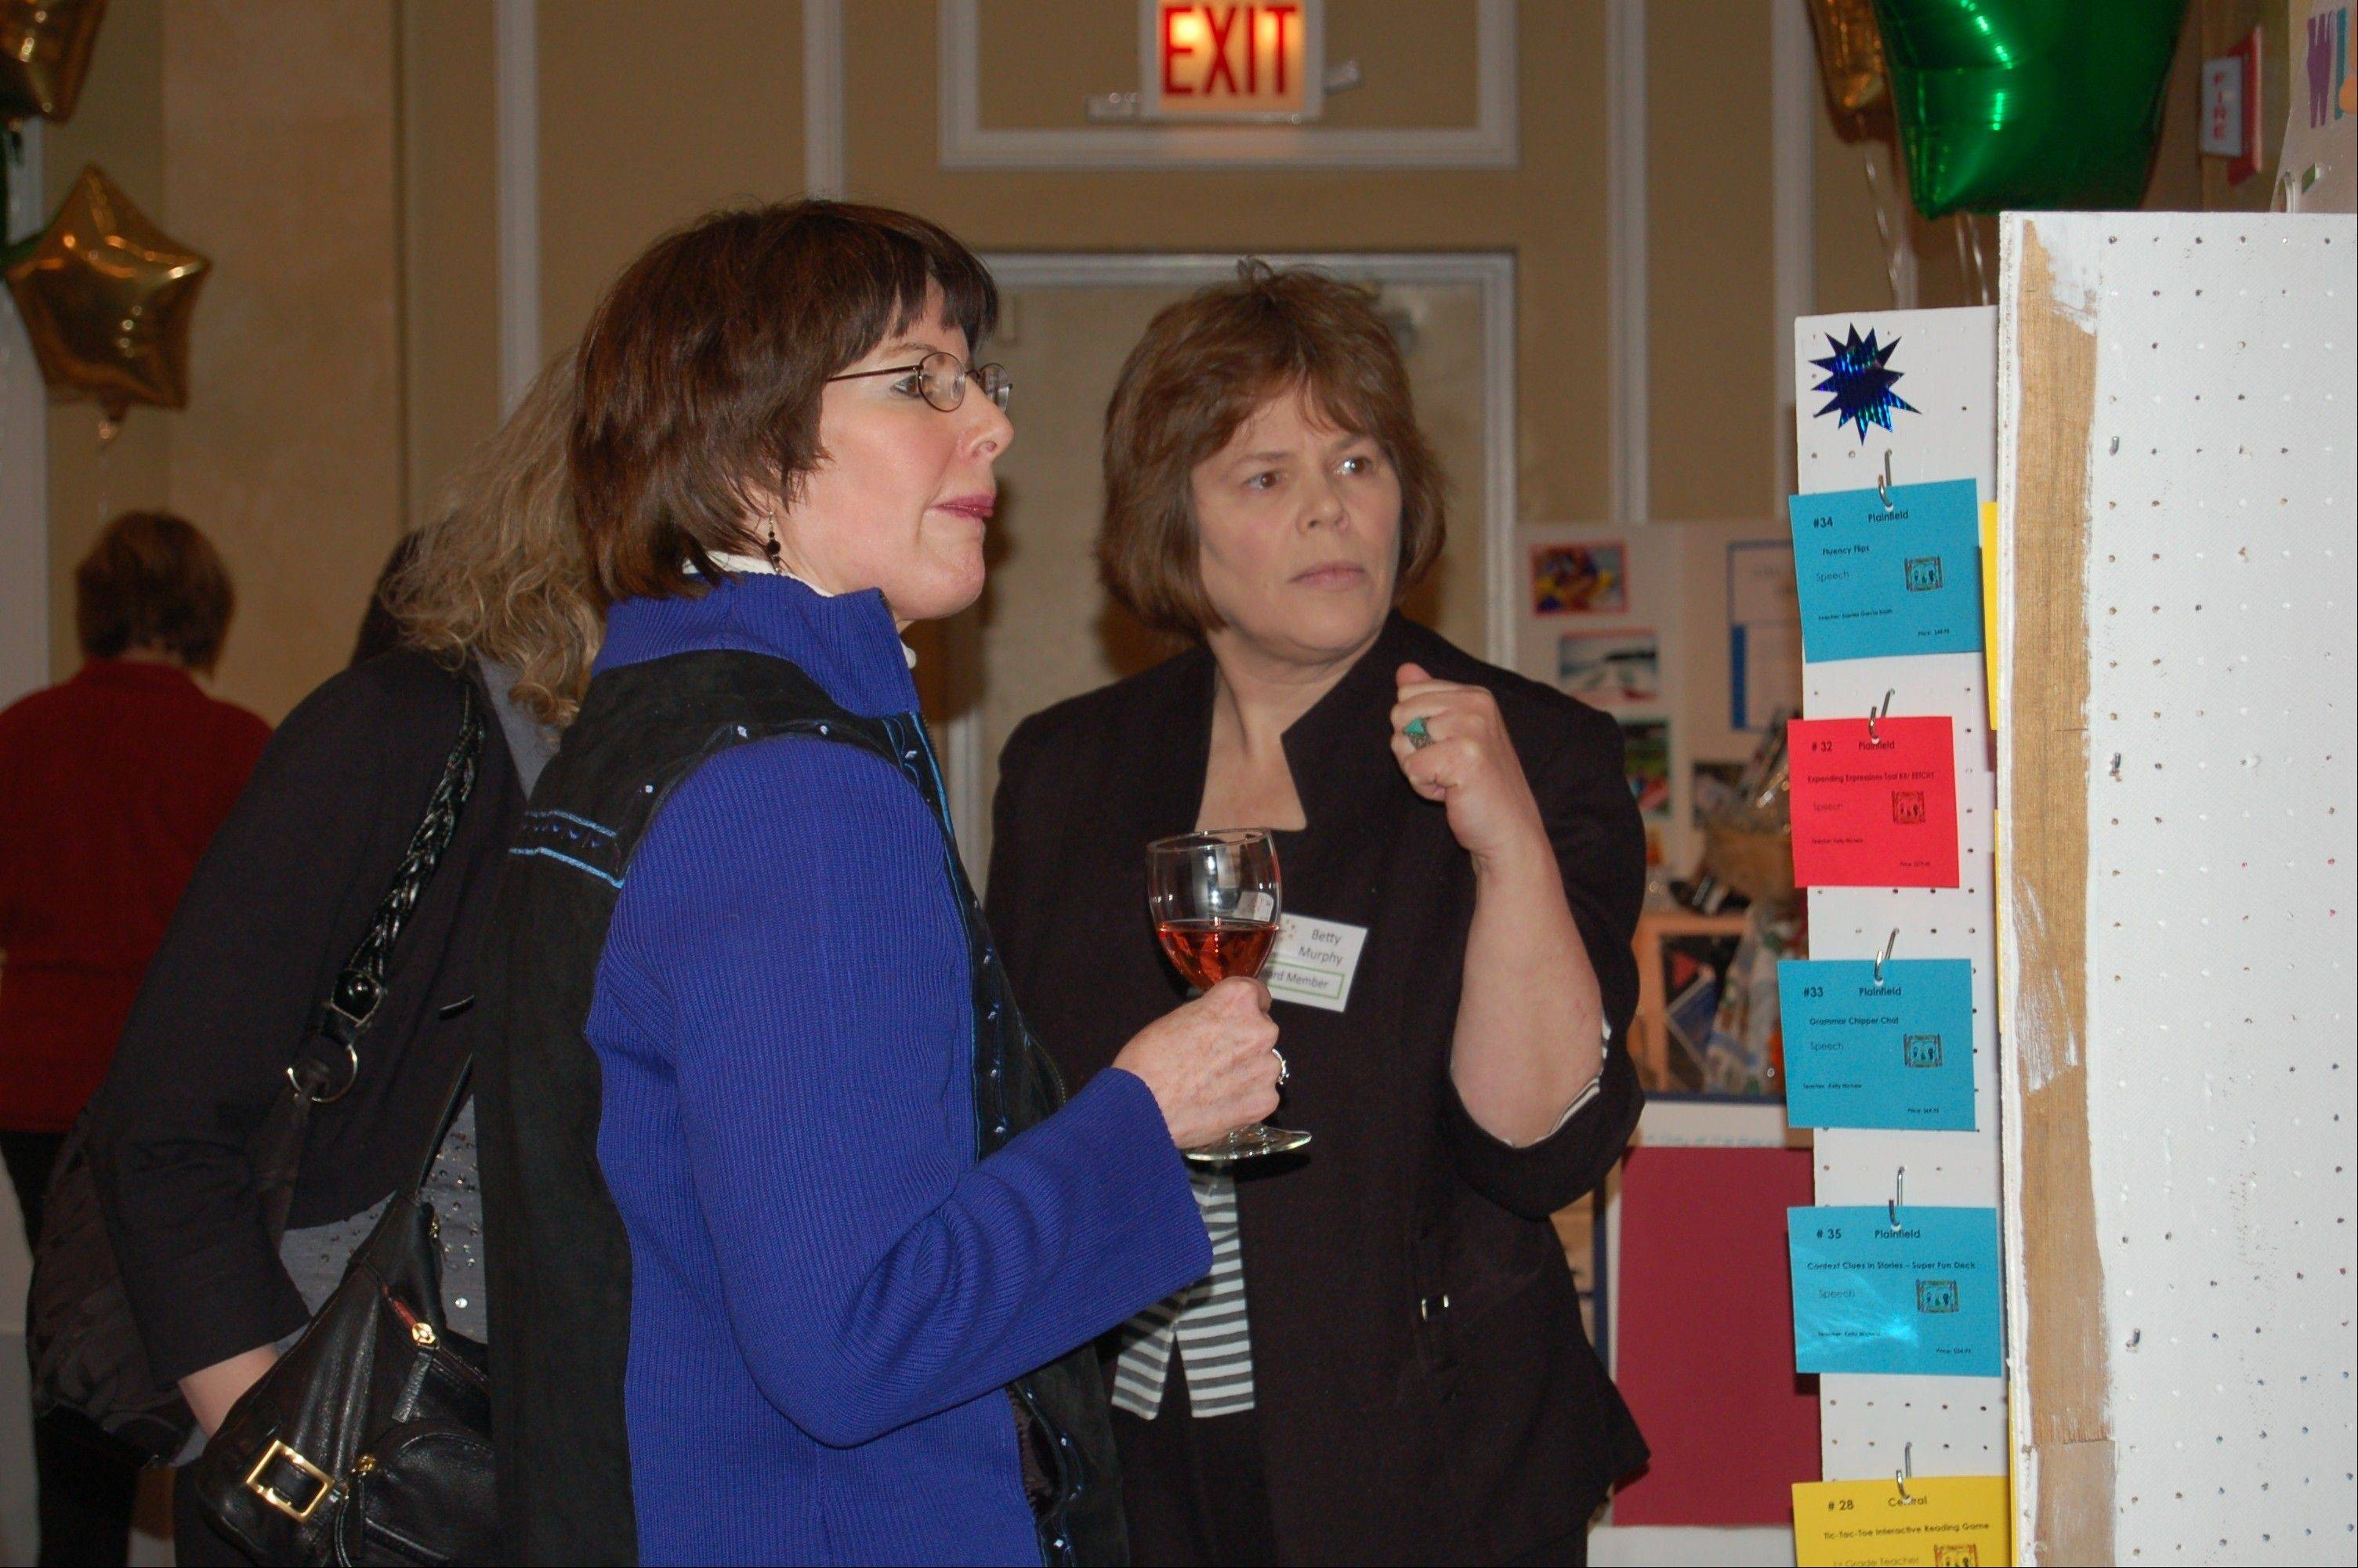 Jean Wilson, retired Cumberland Elementary School teacher, and Betty Murphy, Reach to Teach Benefit co-chairman, discuss what they will bid on at the D62 Foundation Reach to Teach Benefit. All proceeds provide learning opportunities for D62 students.